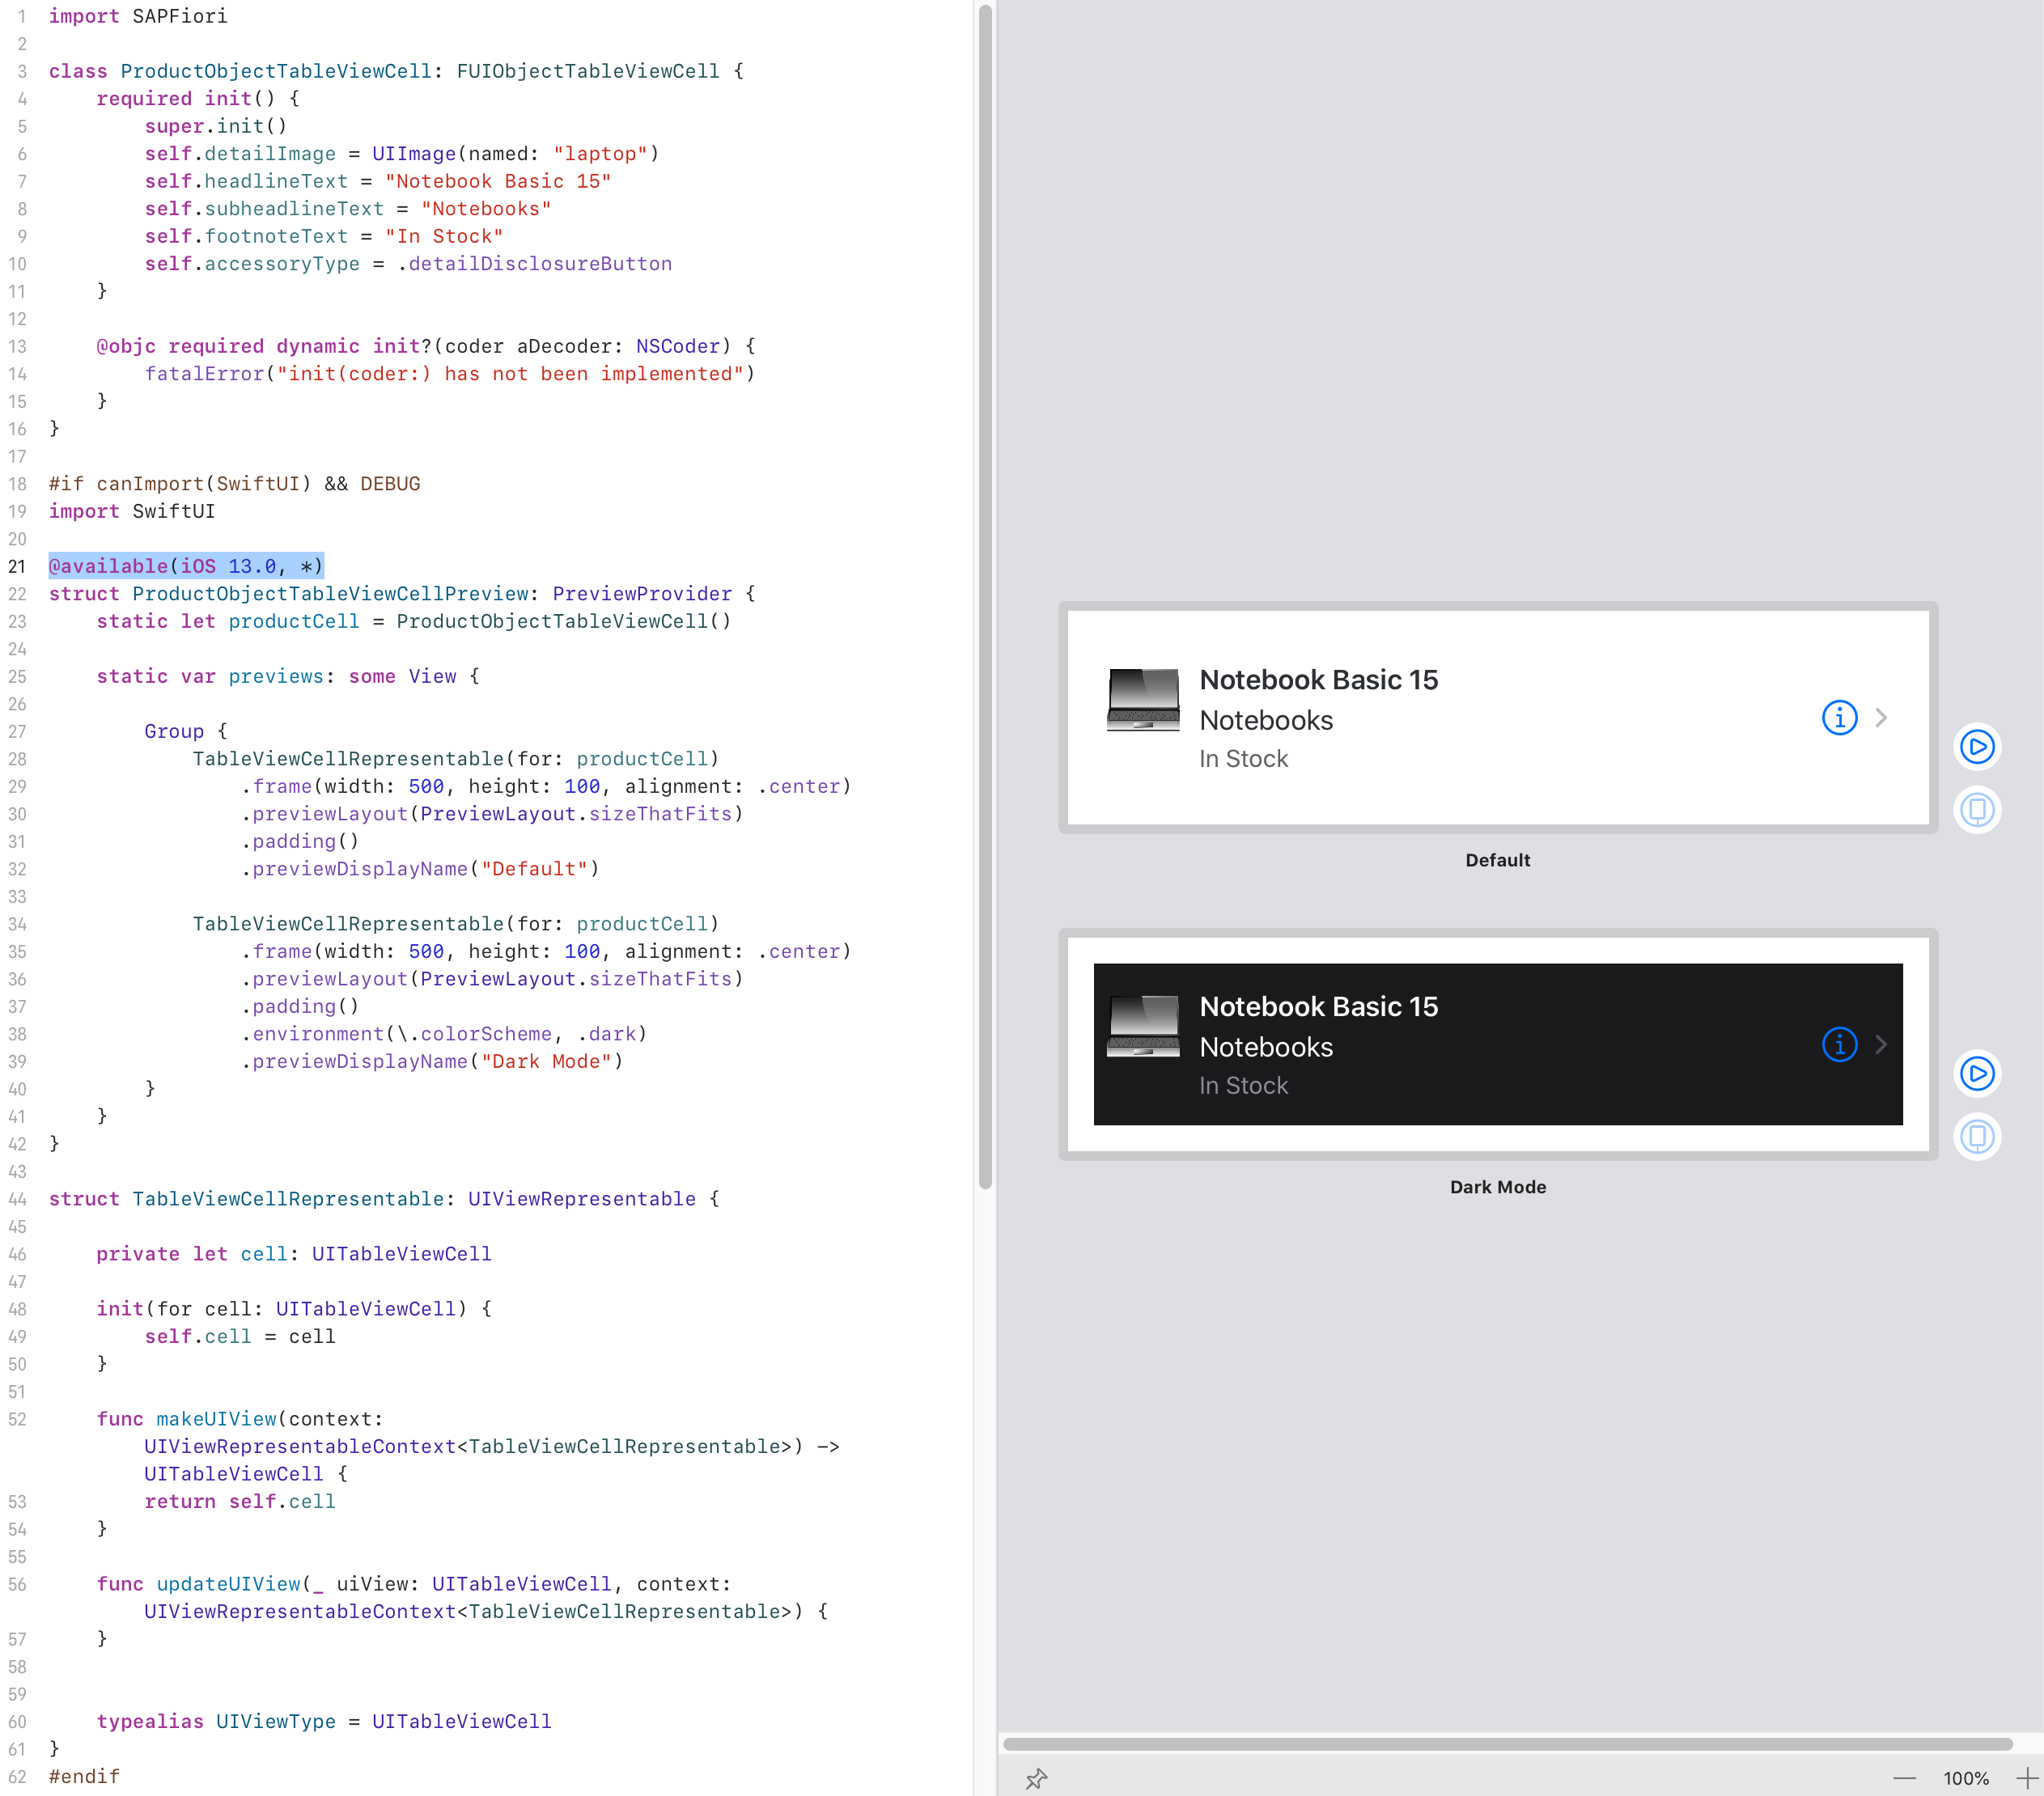 Demo%20how%20to%20use%20Xcode%20Previews%20with%20SAP%20CP%20SDK%20for%20iOS